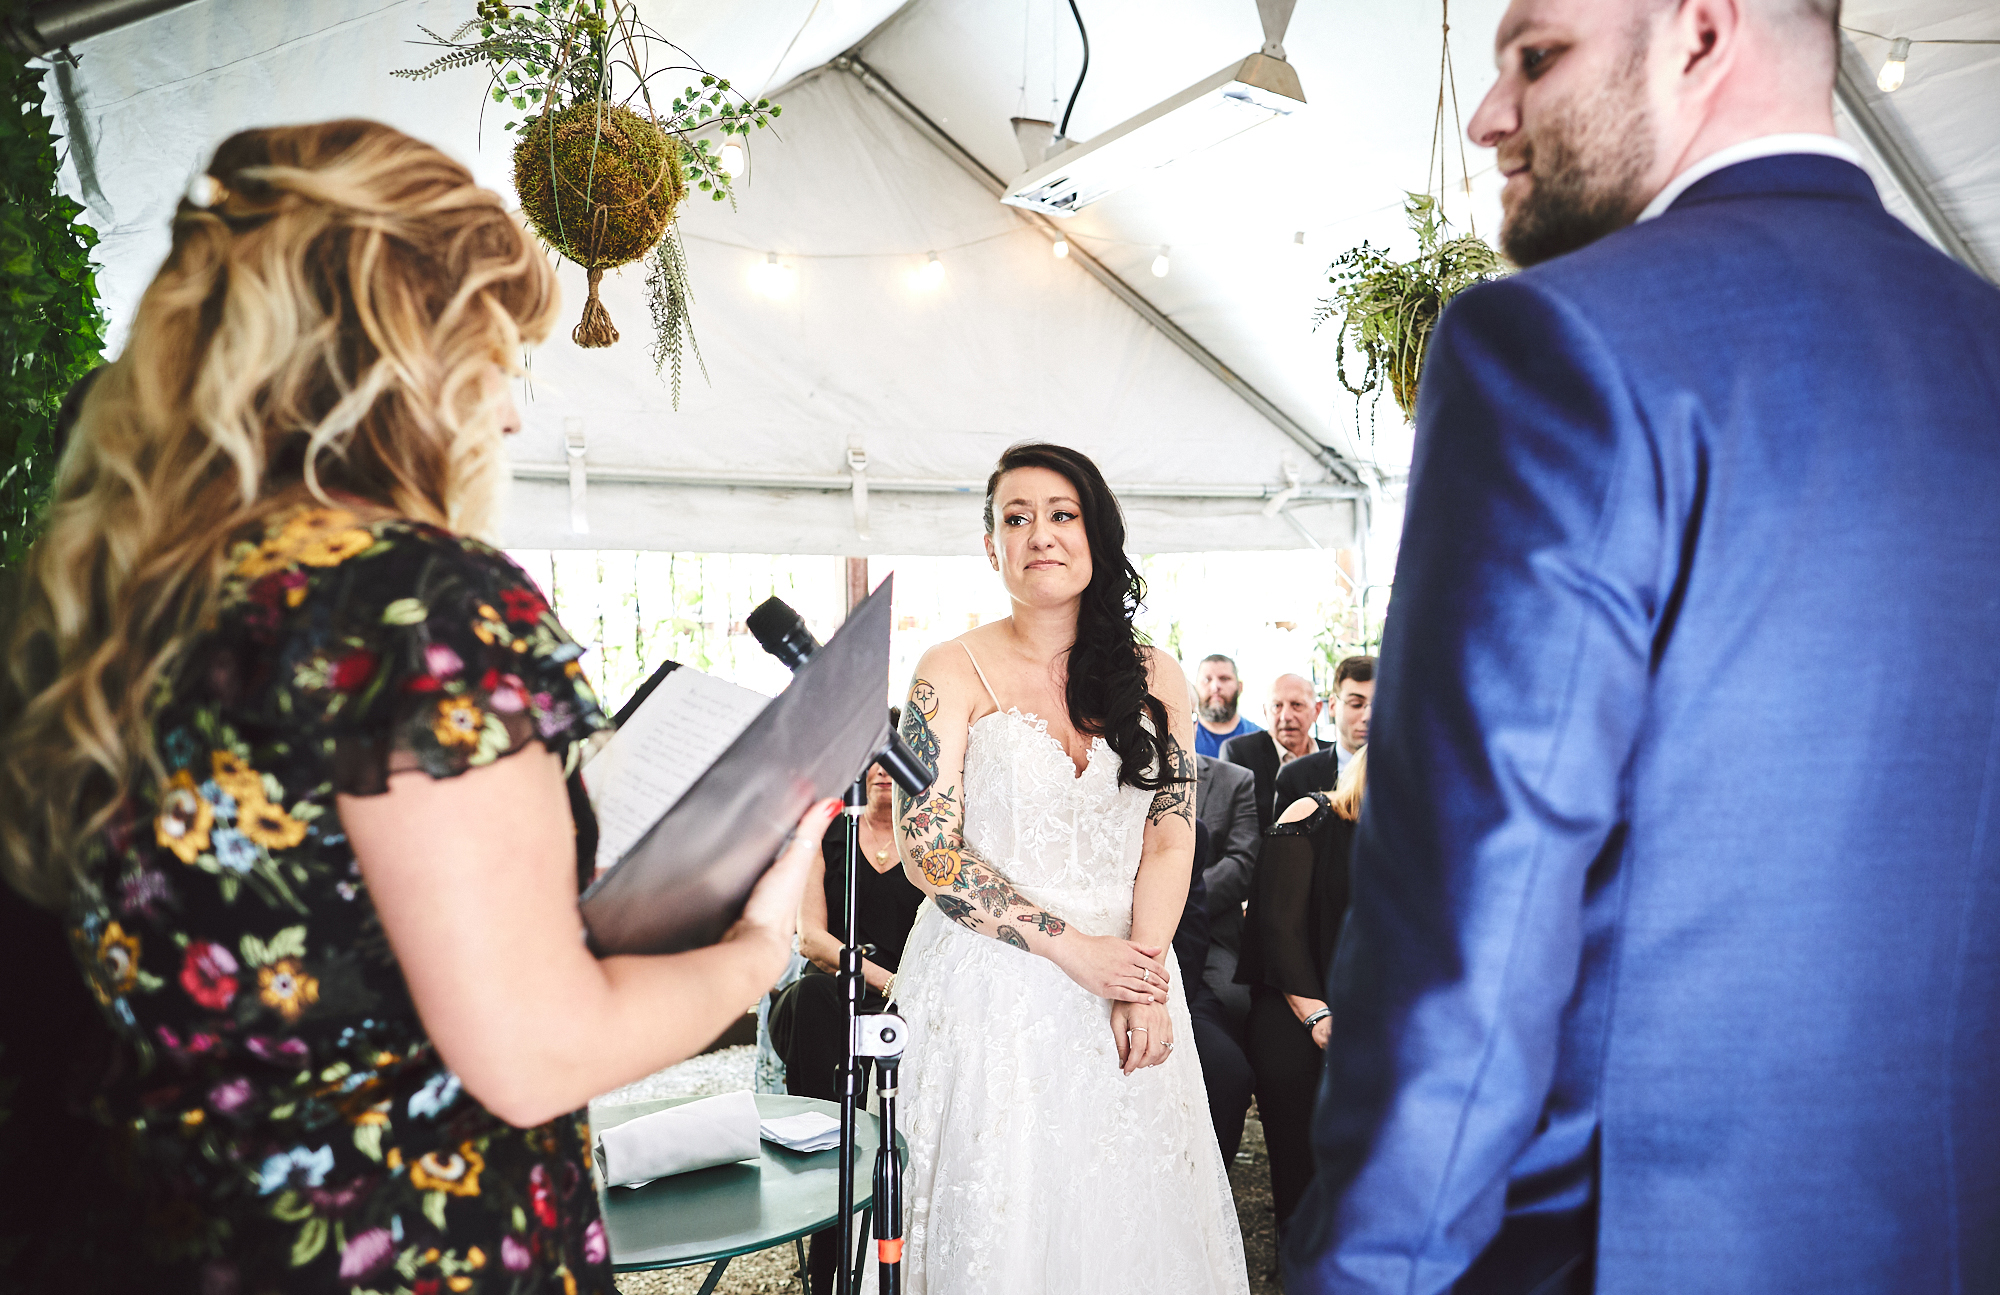 190518_SpringThreesBreweryWedding_By_BriJohnsonWeddings_0087.jpg